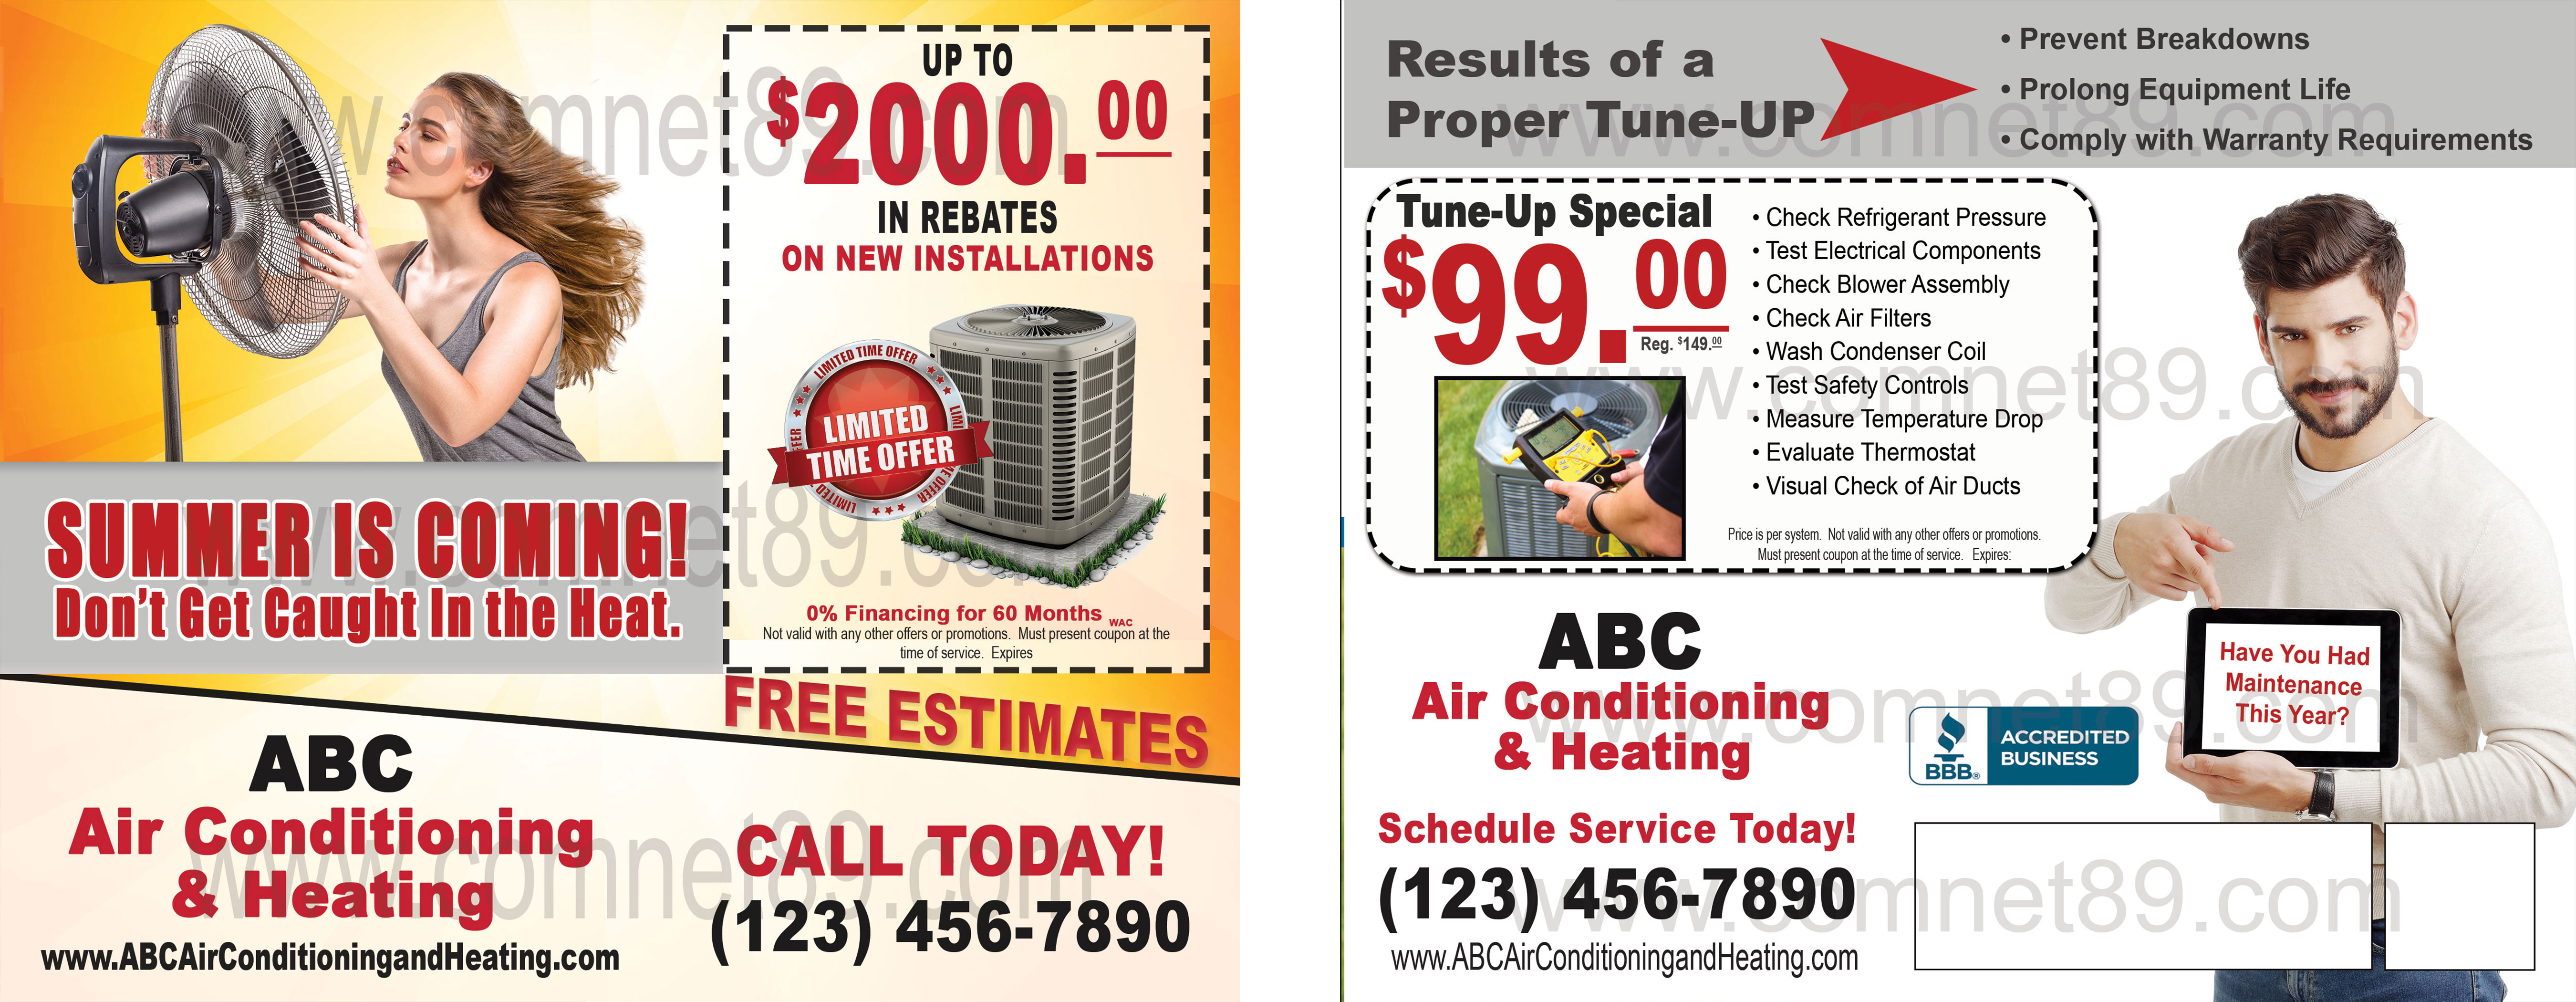 hvac-4-tune-up-both.jpg